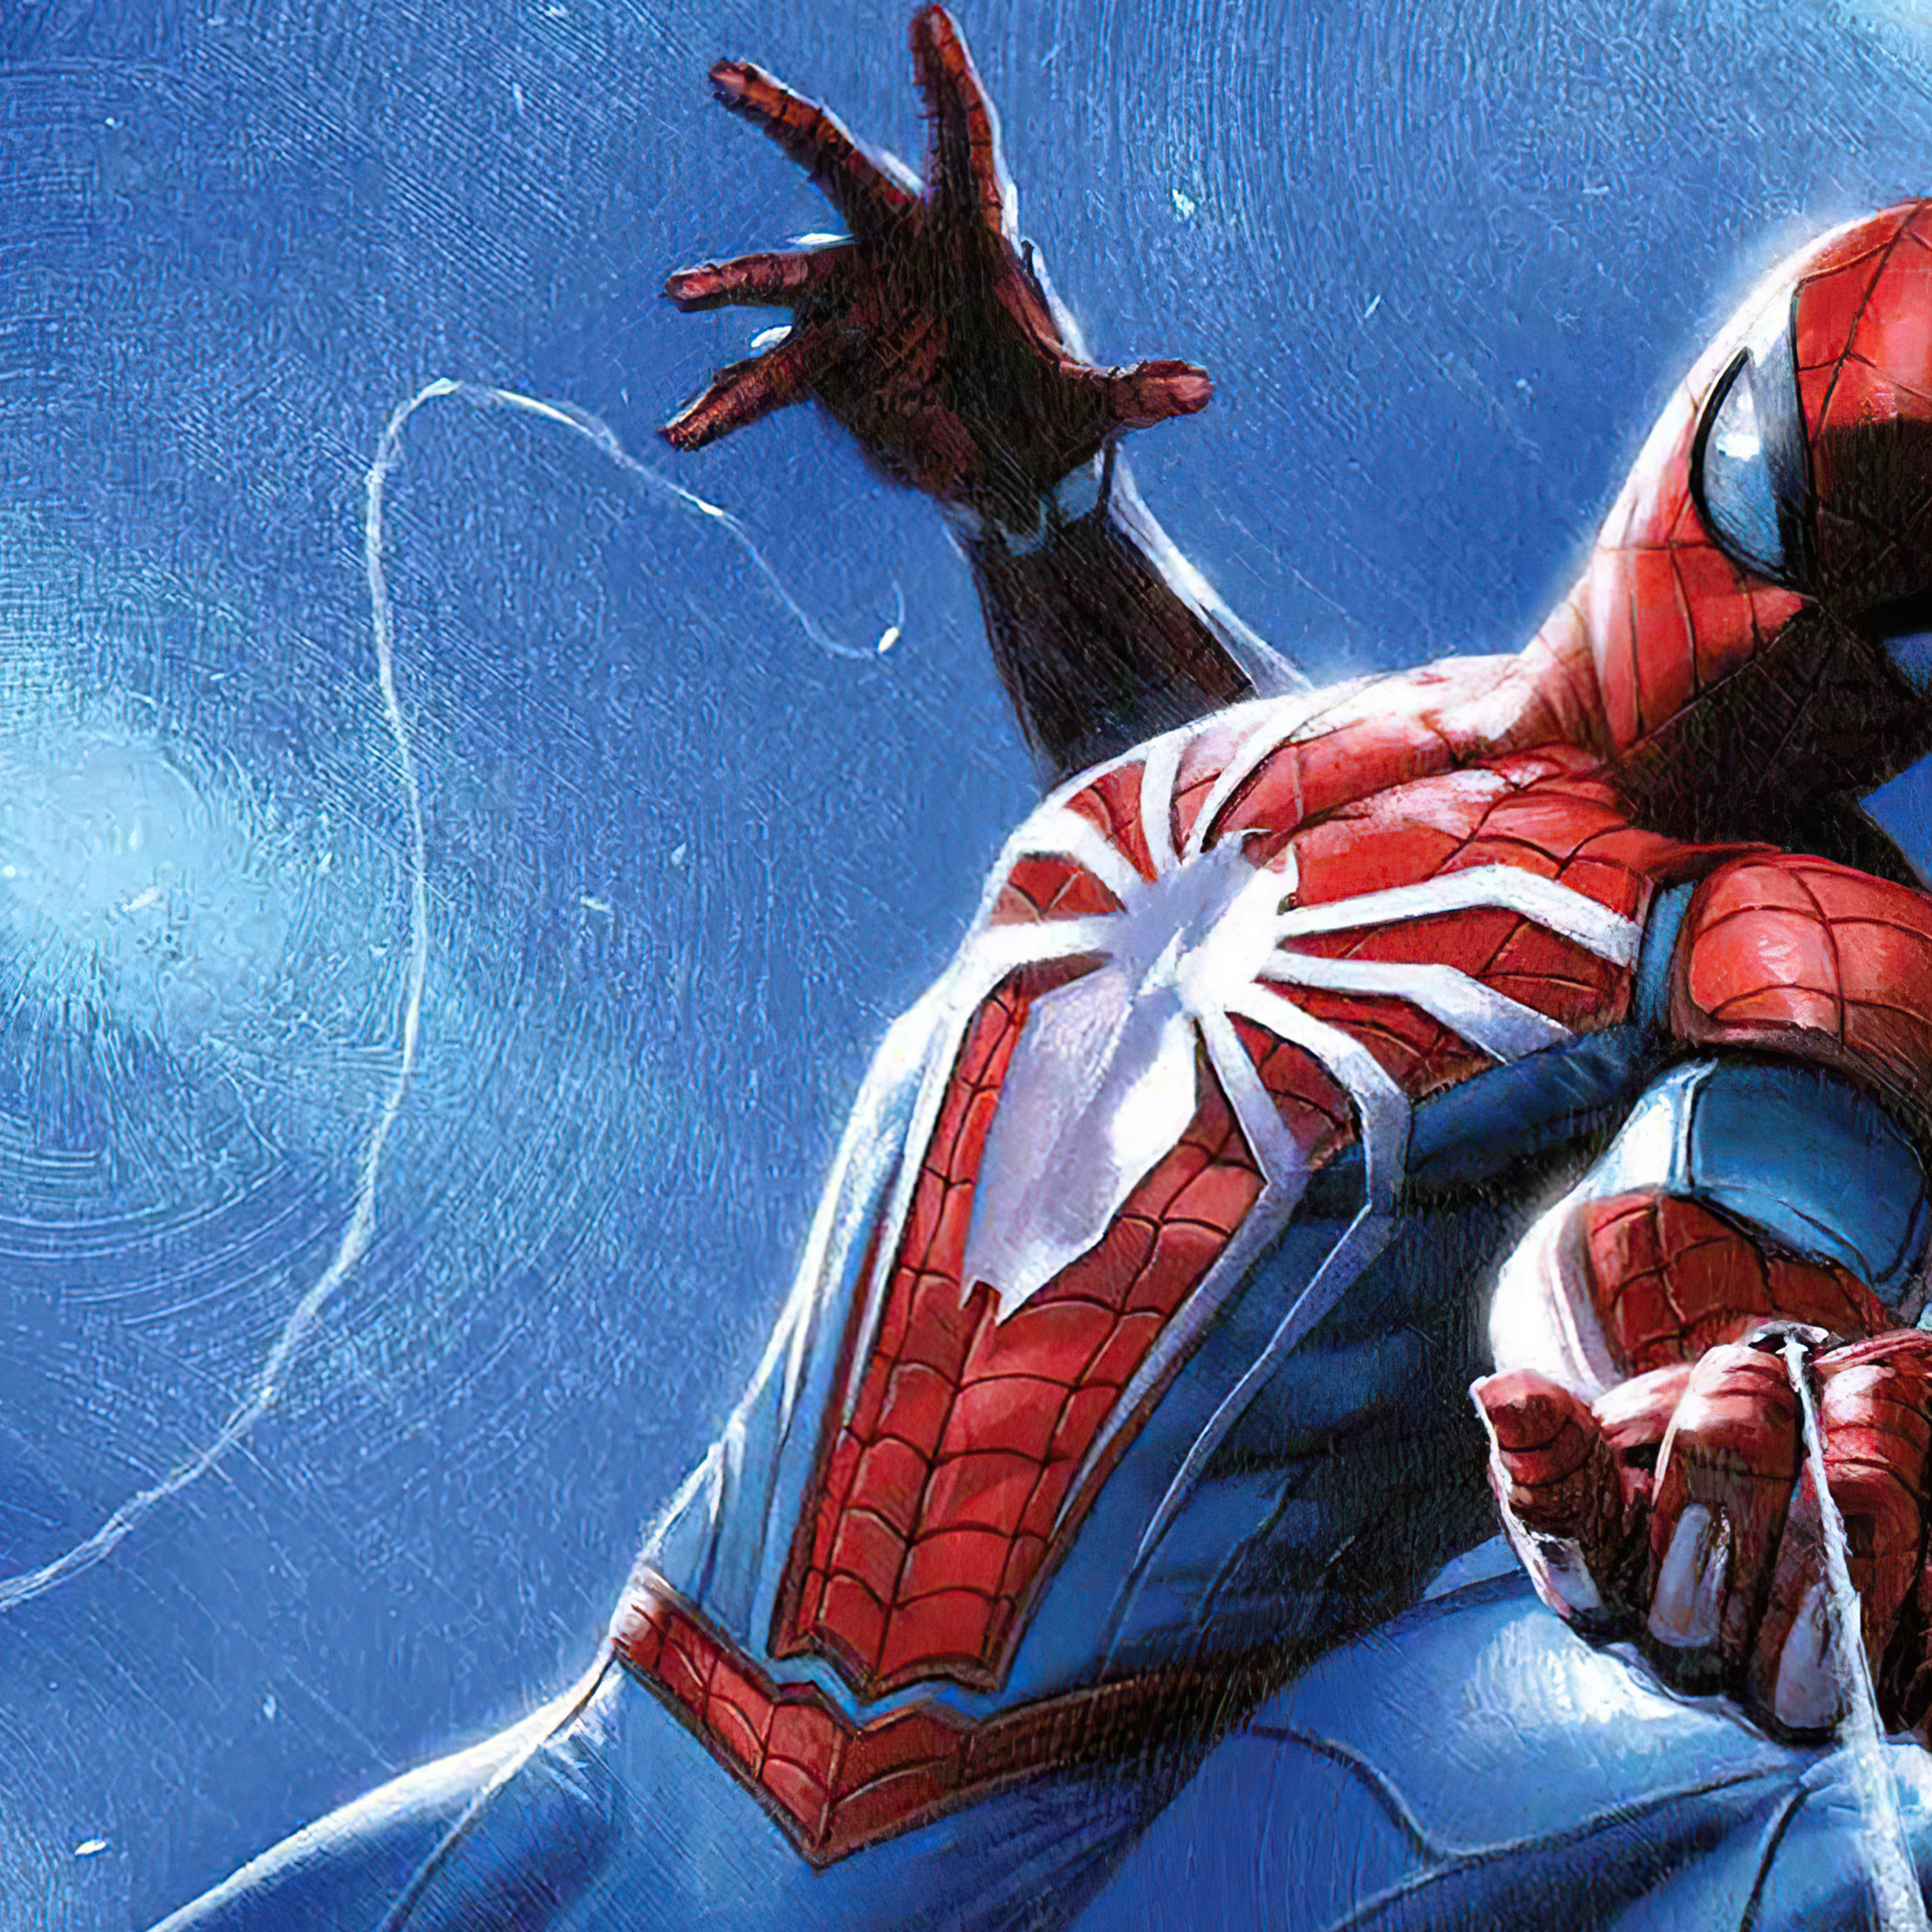 2932x2932 4k Spiderman 2020 Ipad Pro Retina Display Hd 4k Wallpapers Images Backgrounds Photos And Pictures